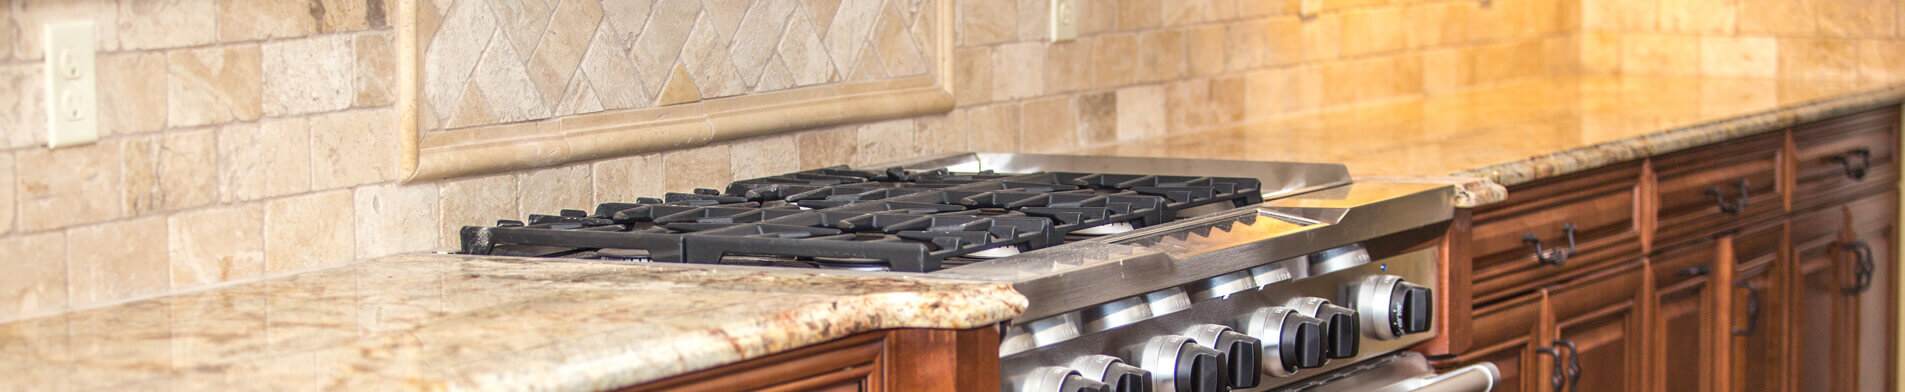 How New Countertops Improve Your Homes Value